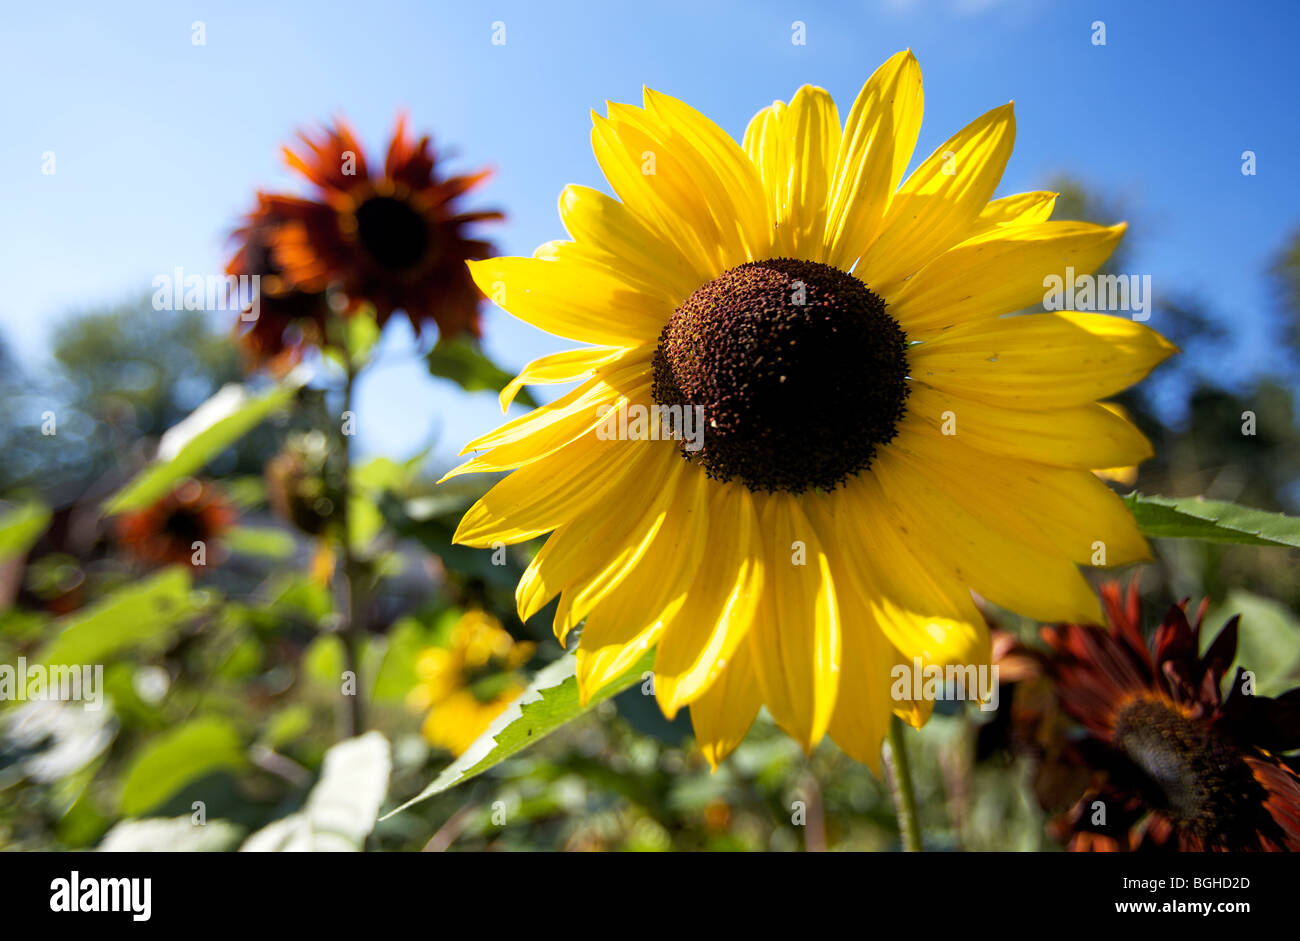 Sun Flowers in full bloom in a central Wisconsin garden. - Stock Image